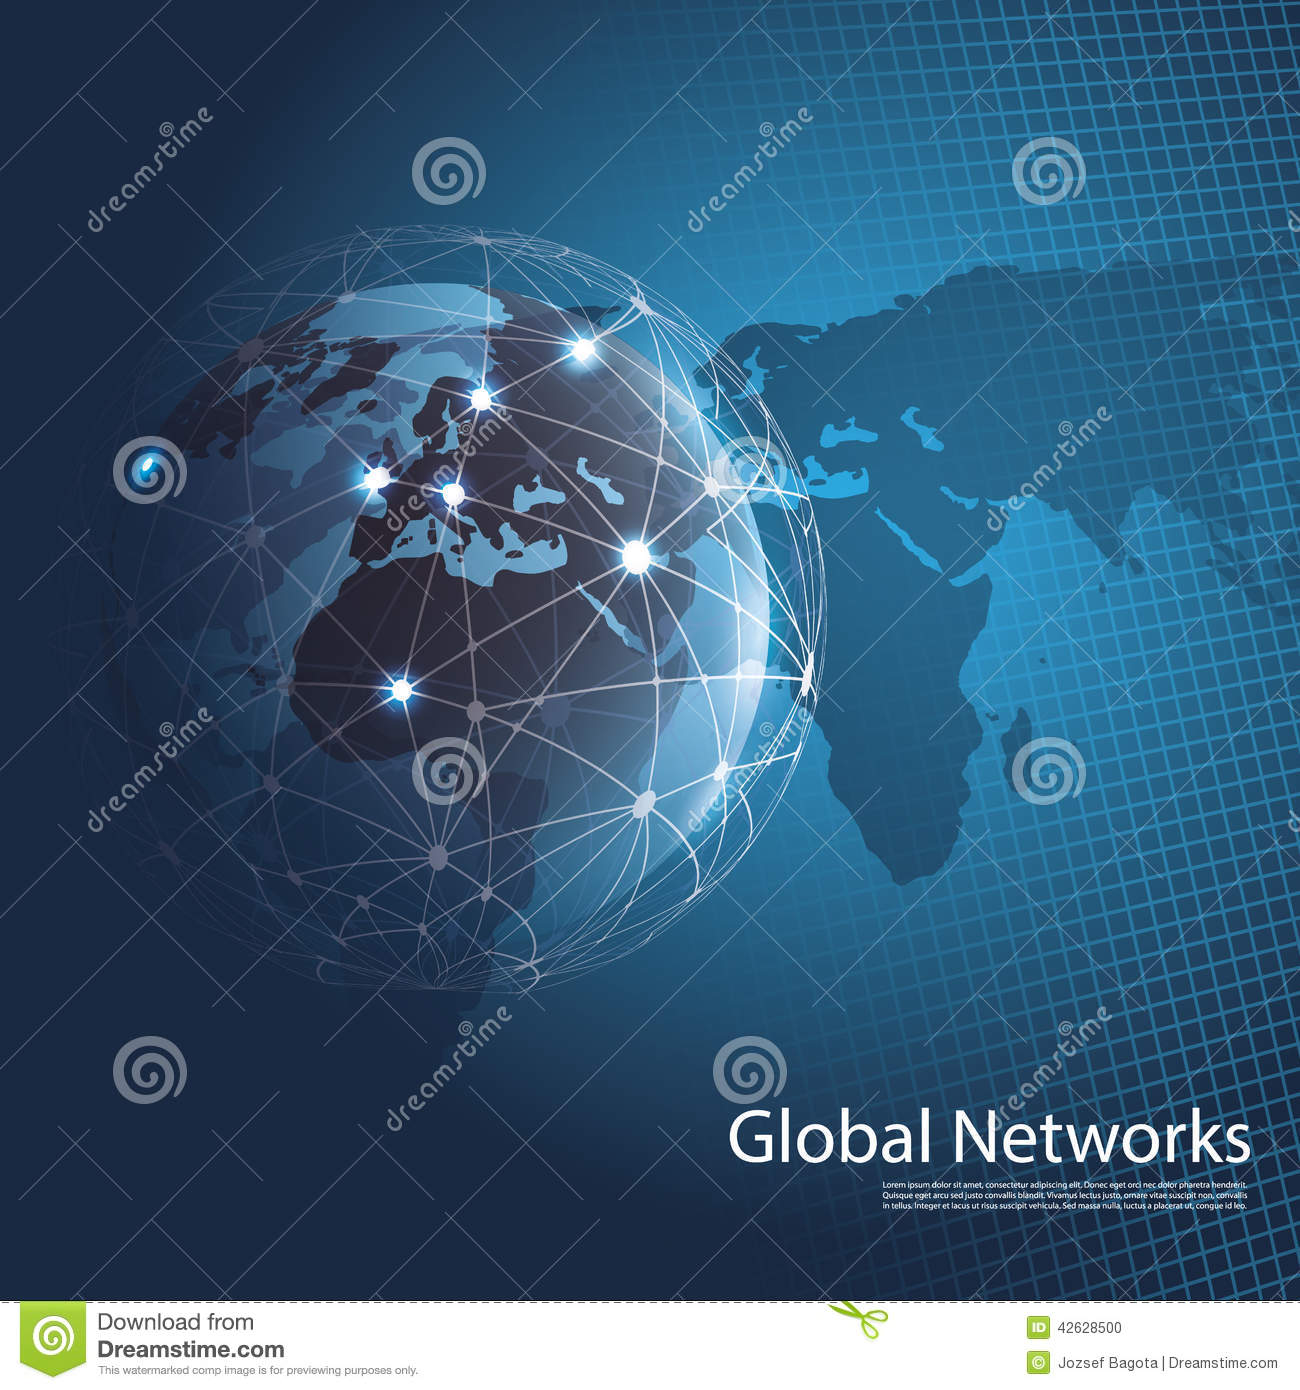 Redes globales